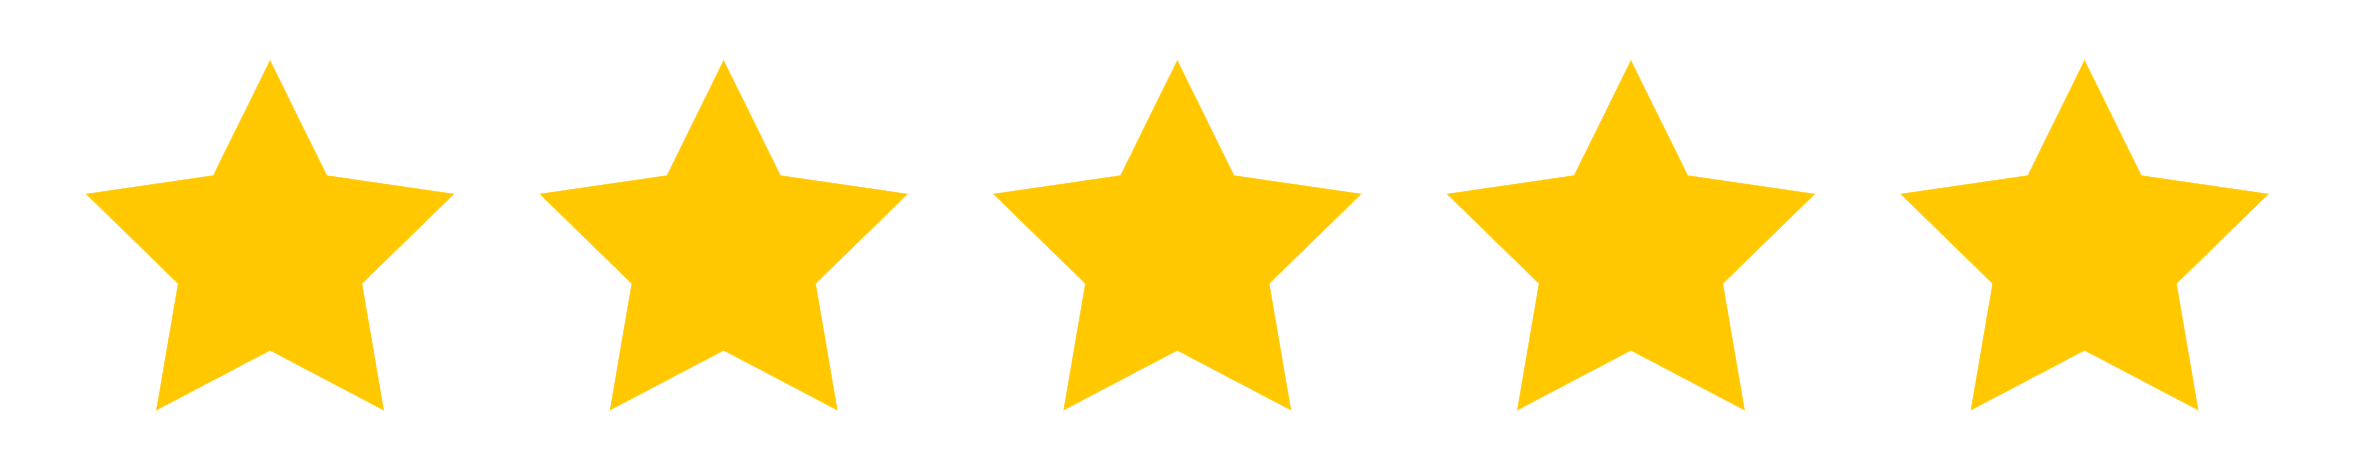 Reviews star rating from Diane C. for A-1 Self Storage in Torrance, California